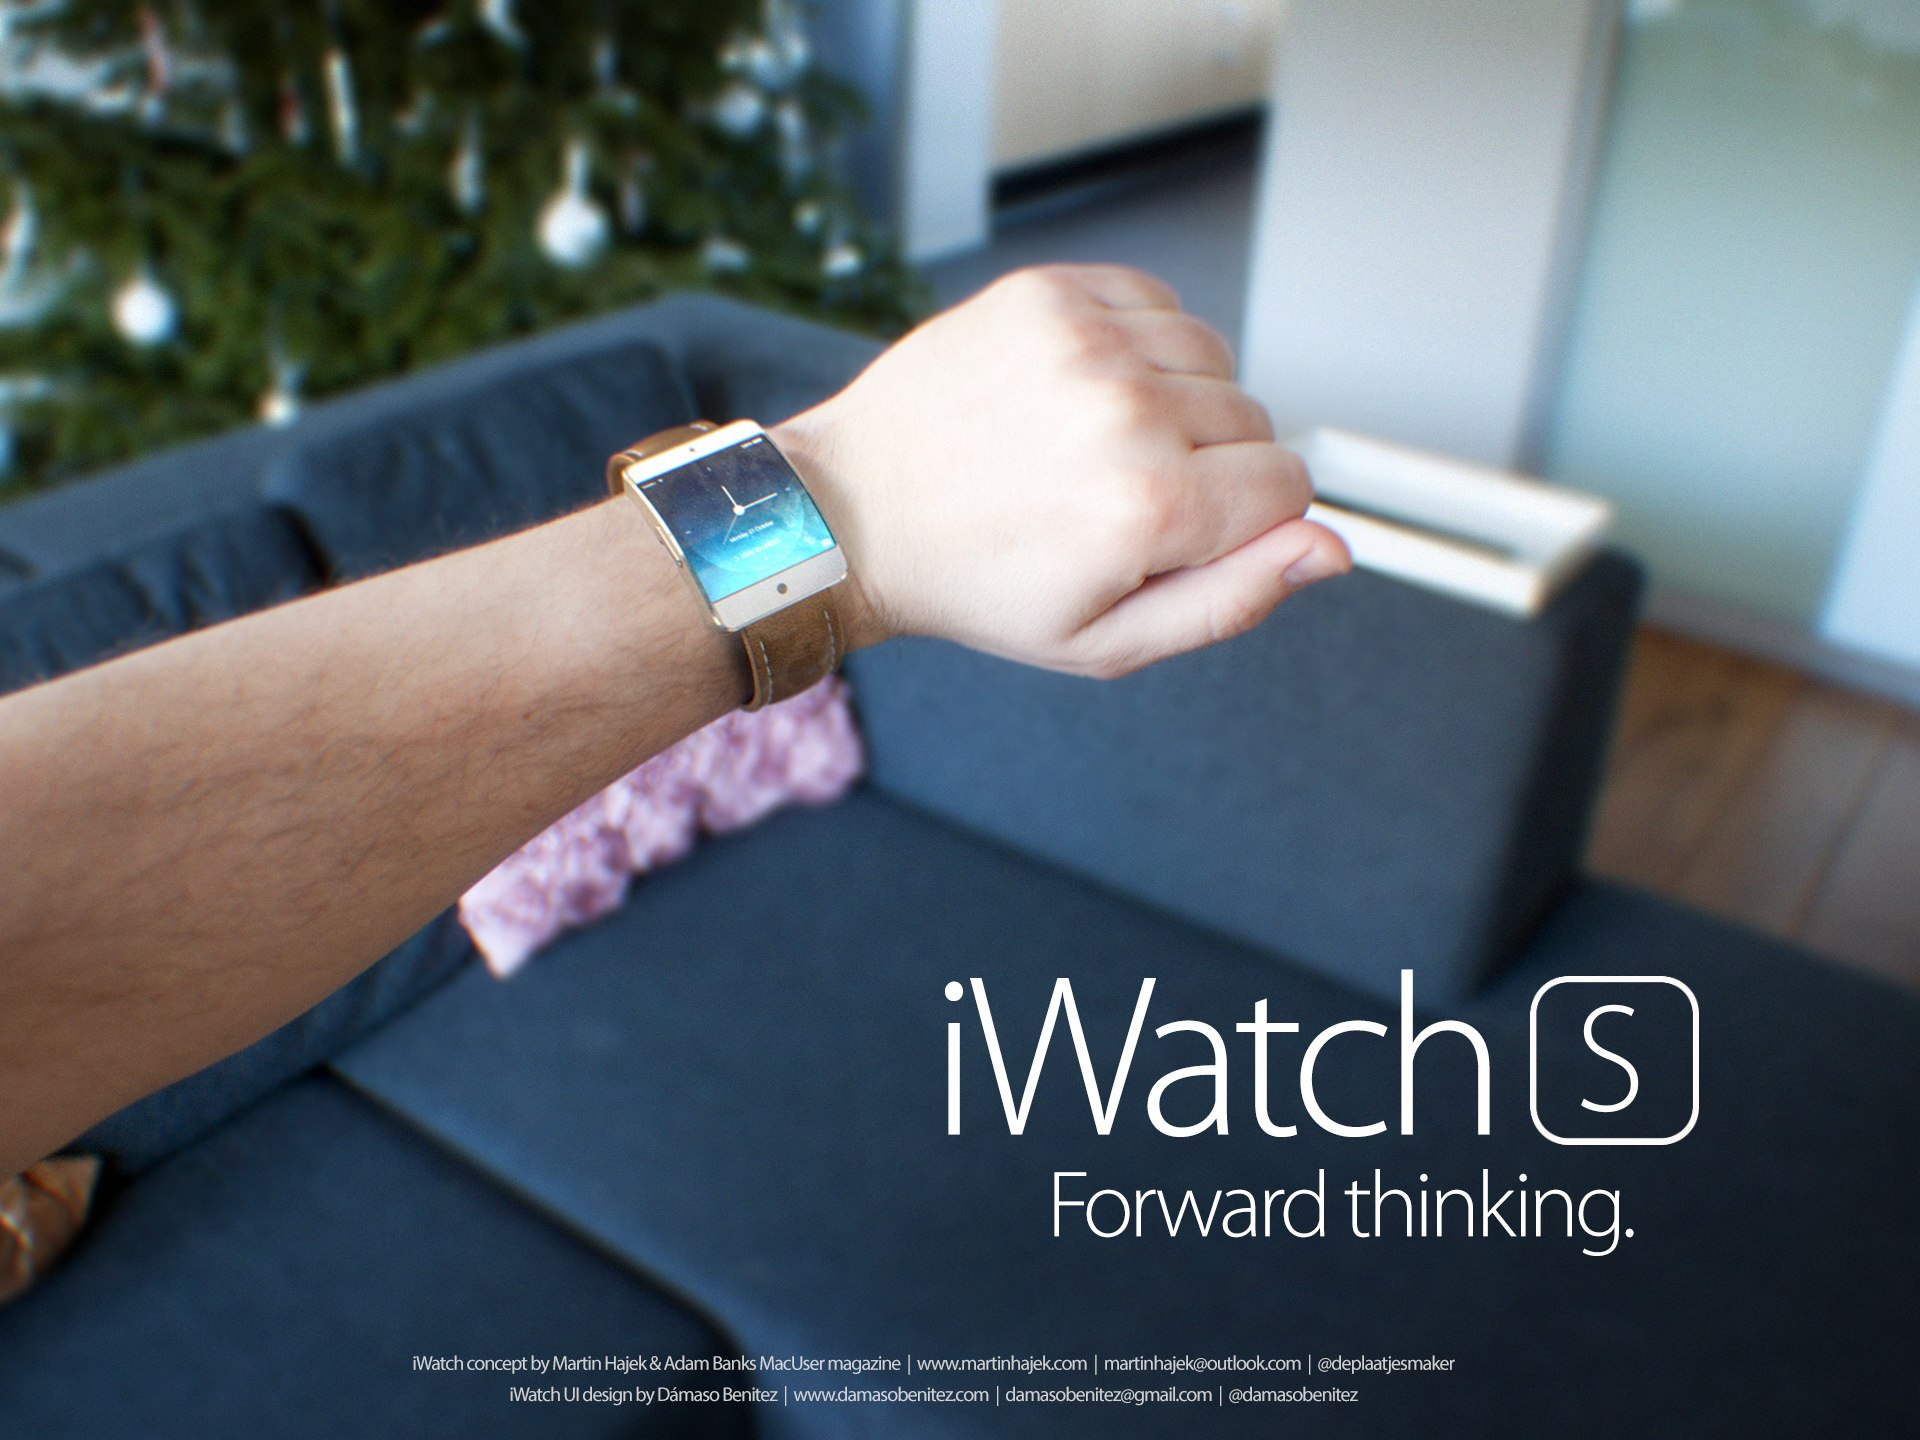 iWatch S (on wrist, Martin Hajek 001)